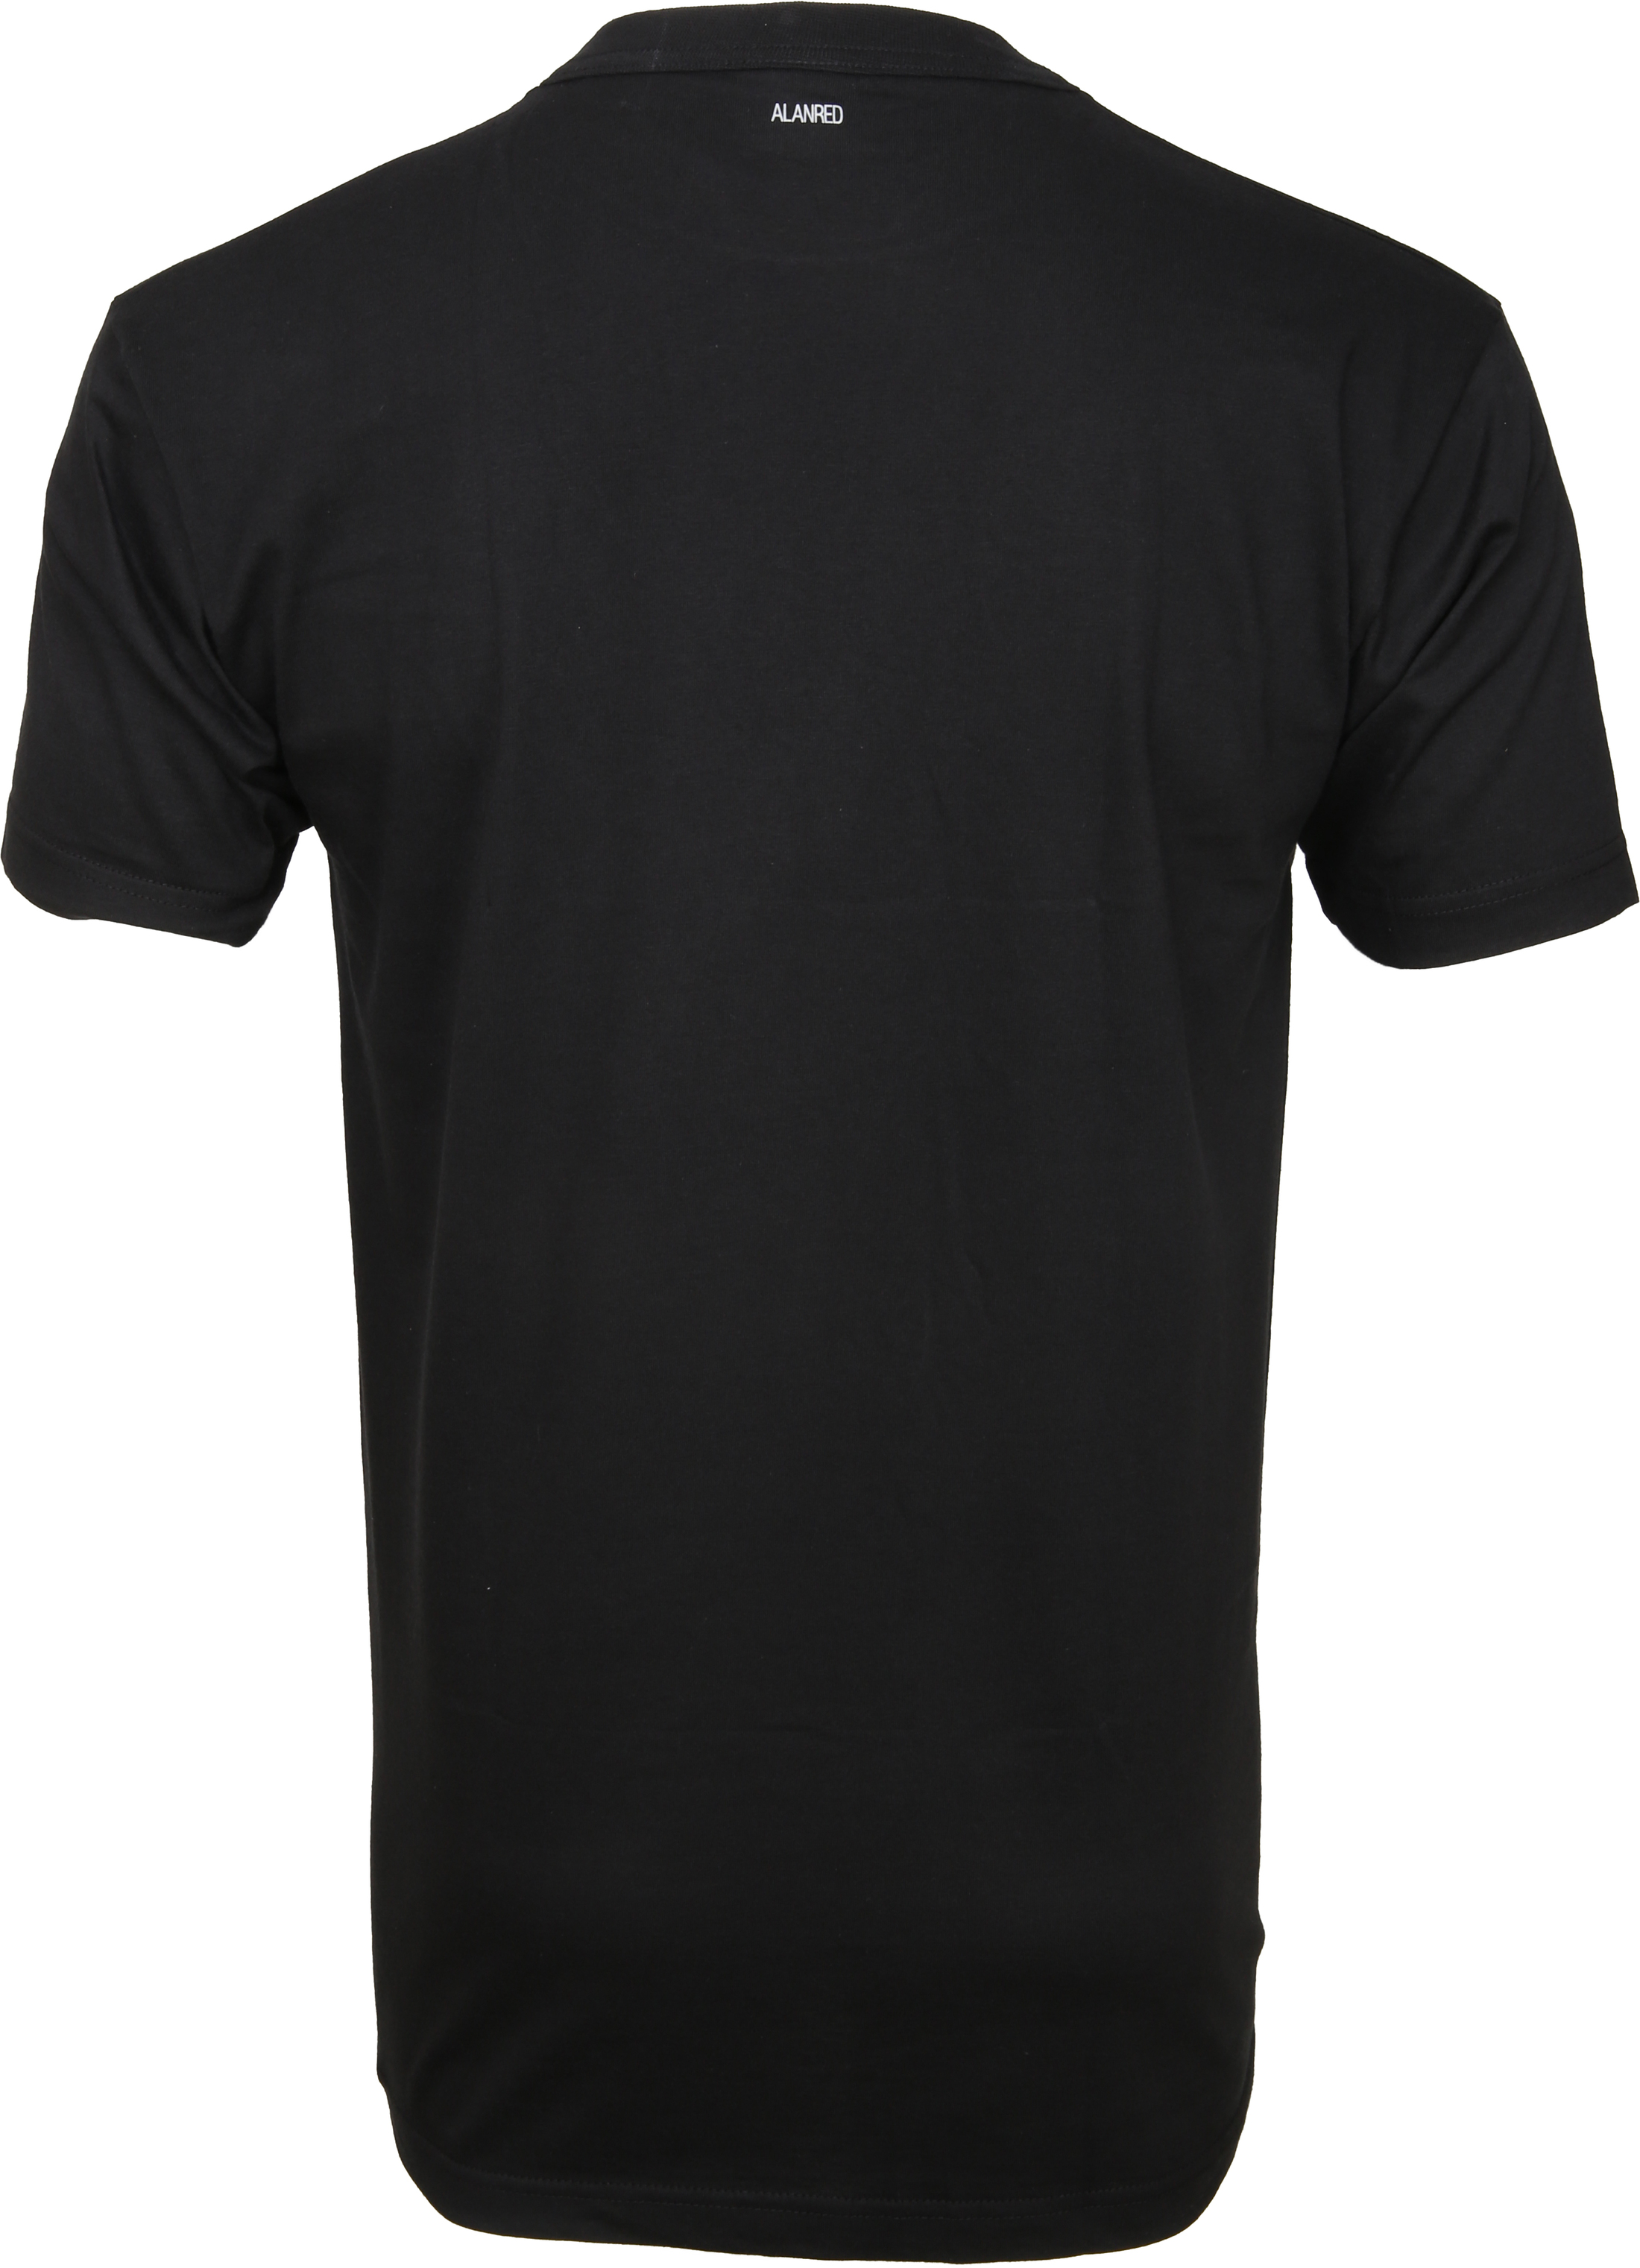 Alan Red T-shirt Virginia O-Neck Black 2-Pack photo 1